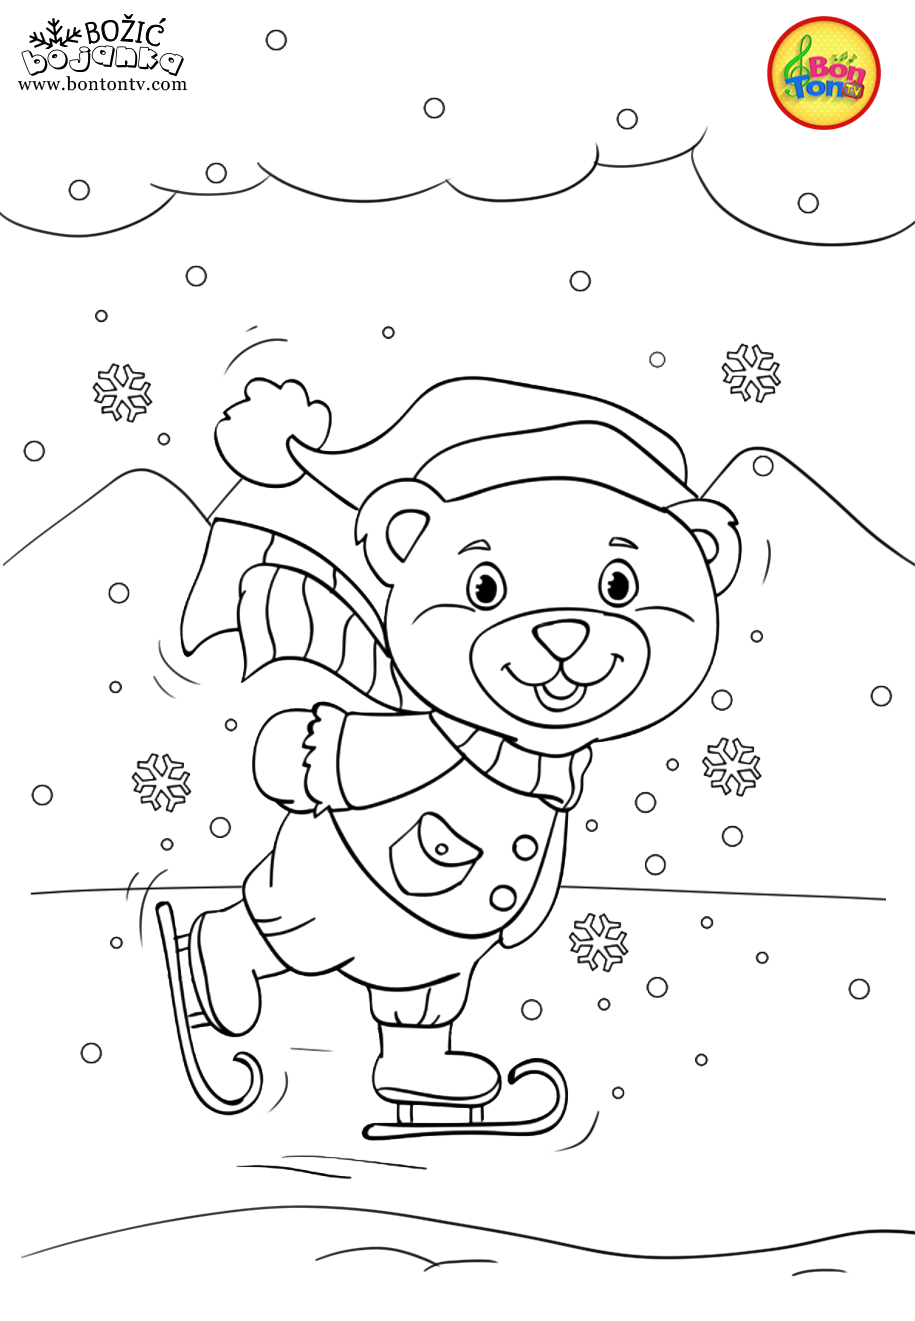 Wonderful Photo kids Coloring Books Concepts Right here is